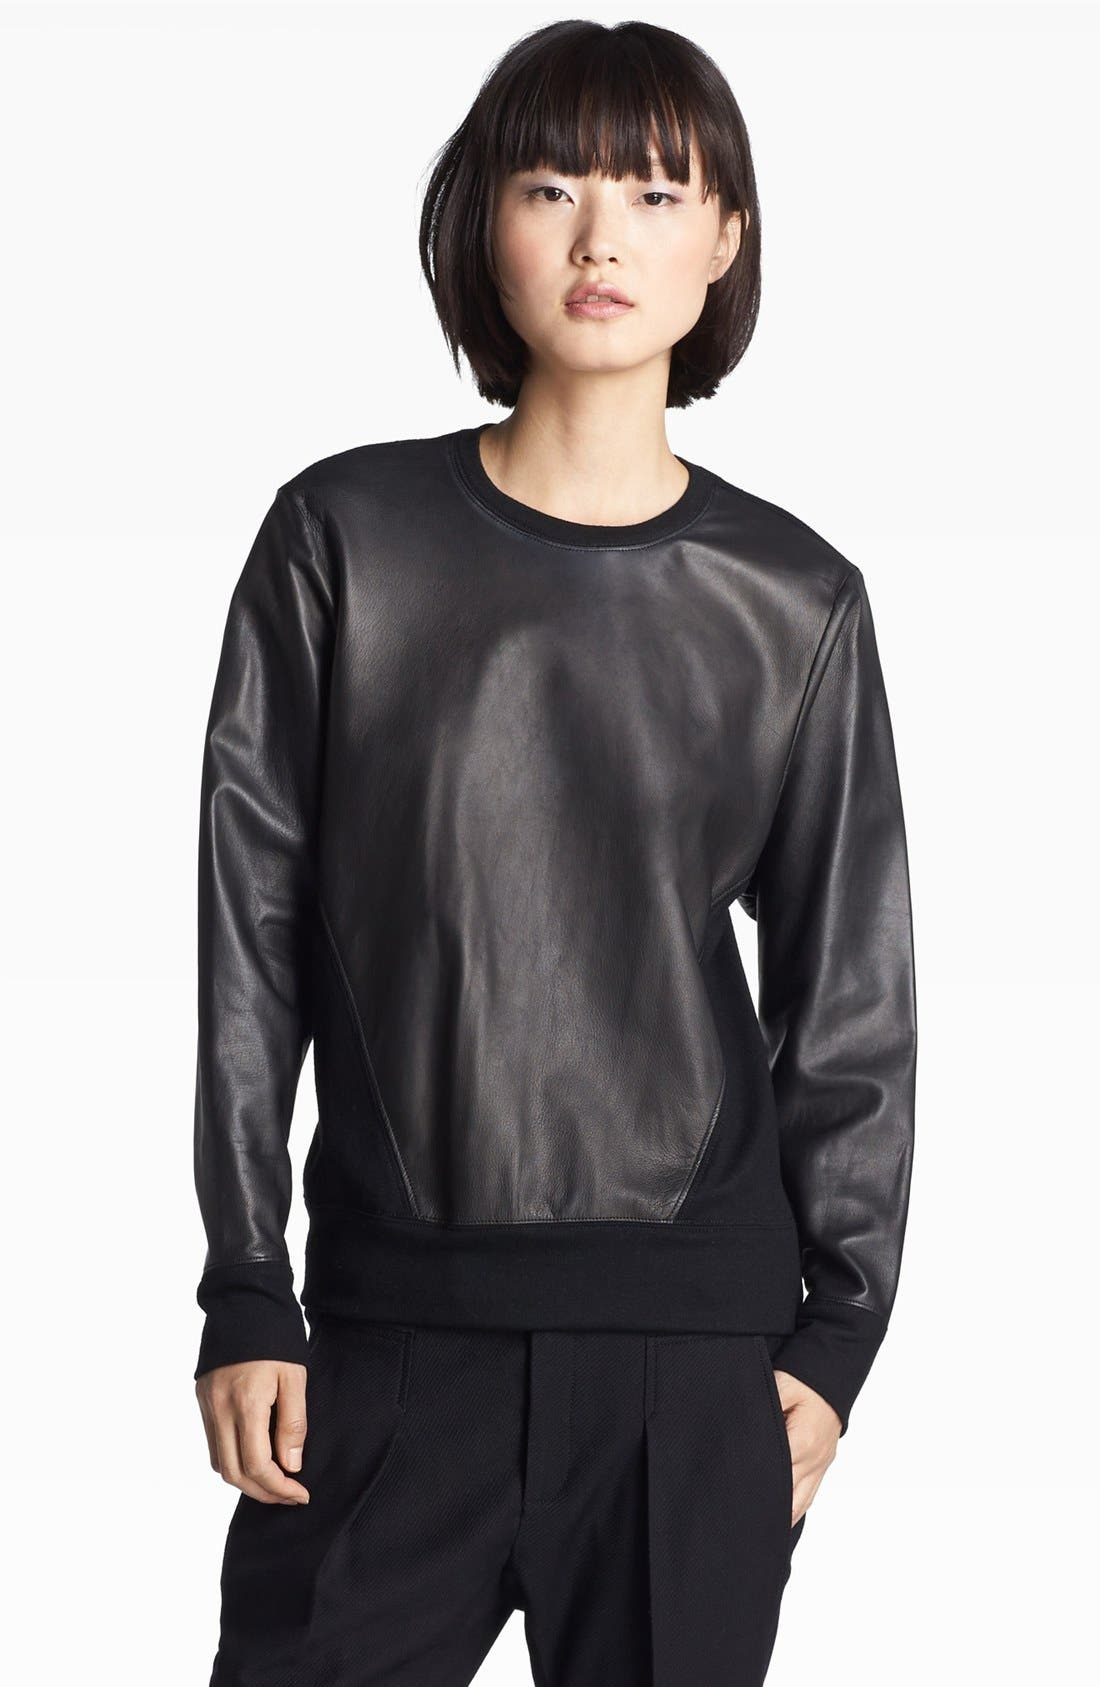 Alternate Image 1 Selected - Helmut Lang Leather Sweatshirt